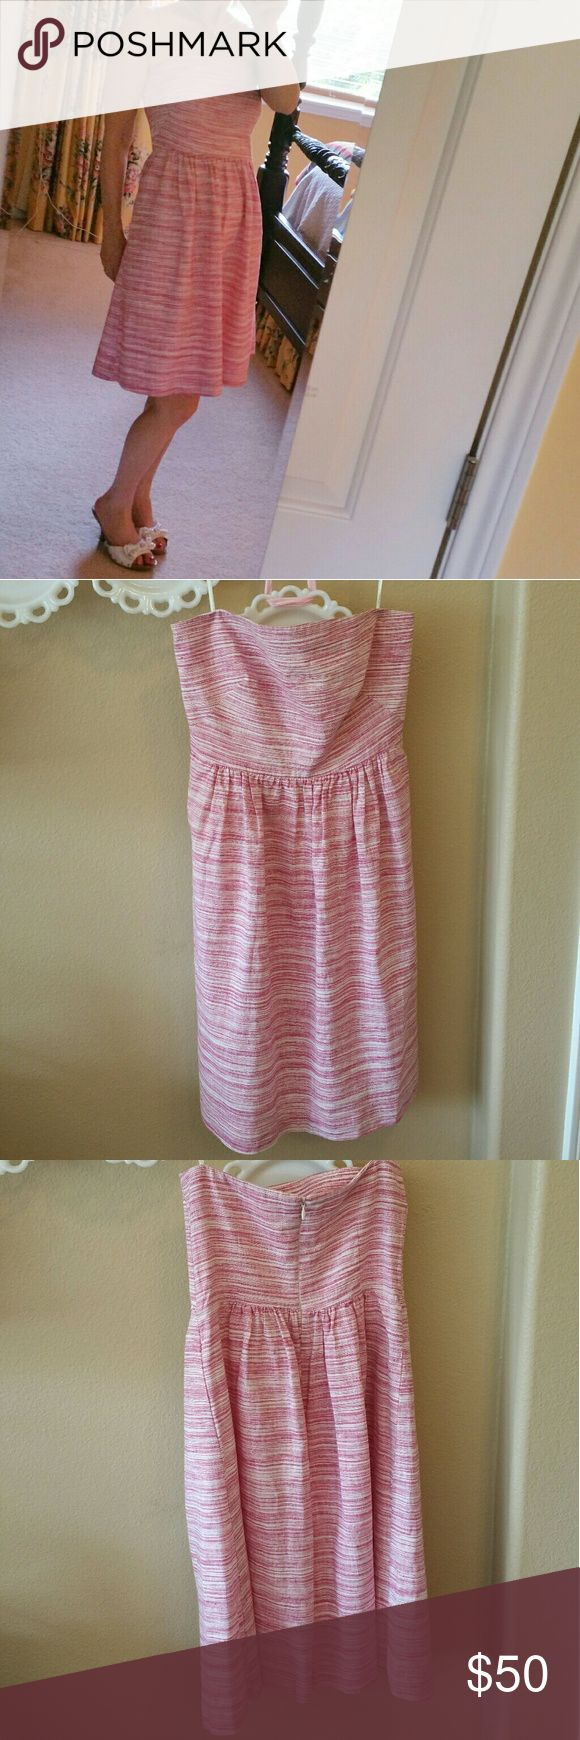 BANANA REPUBLIC SUMMER STRAPLESS DRESS This BANANA REPUBLIC STRAPLESS DRESS is fully lined and perfect for dressing up or down. The pink dress is made of cotton and linen and is a figure-flattering design. Banana Republic Dresses Strapless